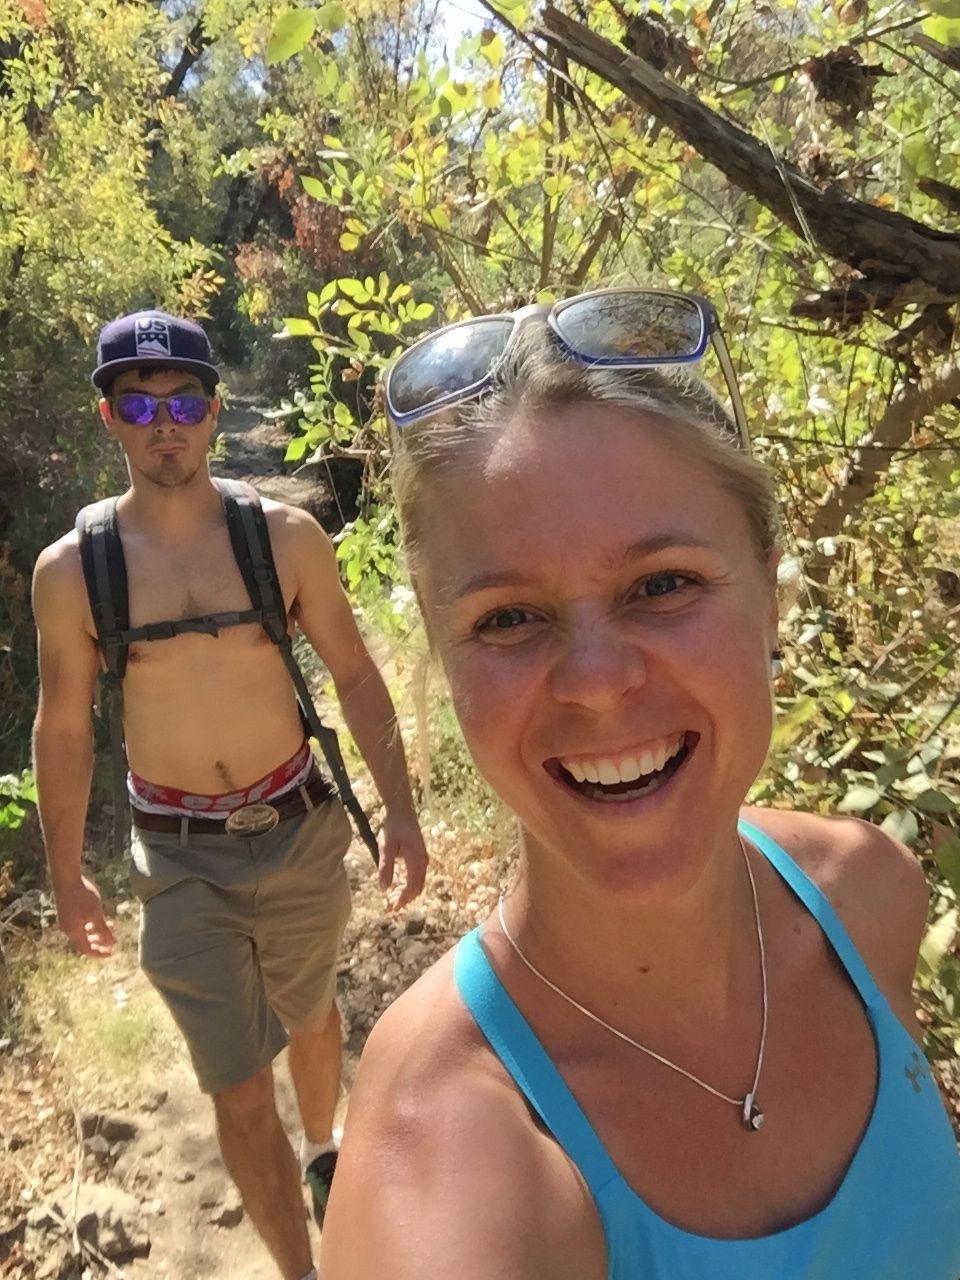 Hiking in the heat!